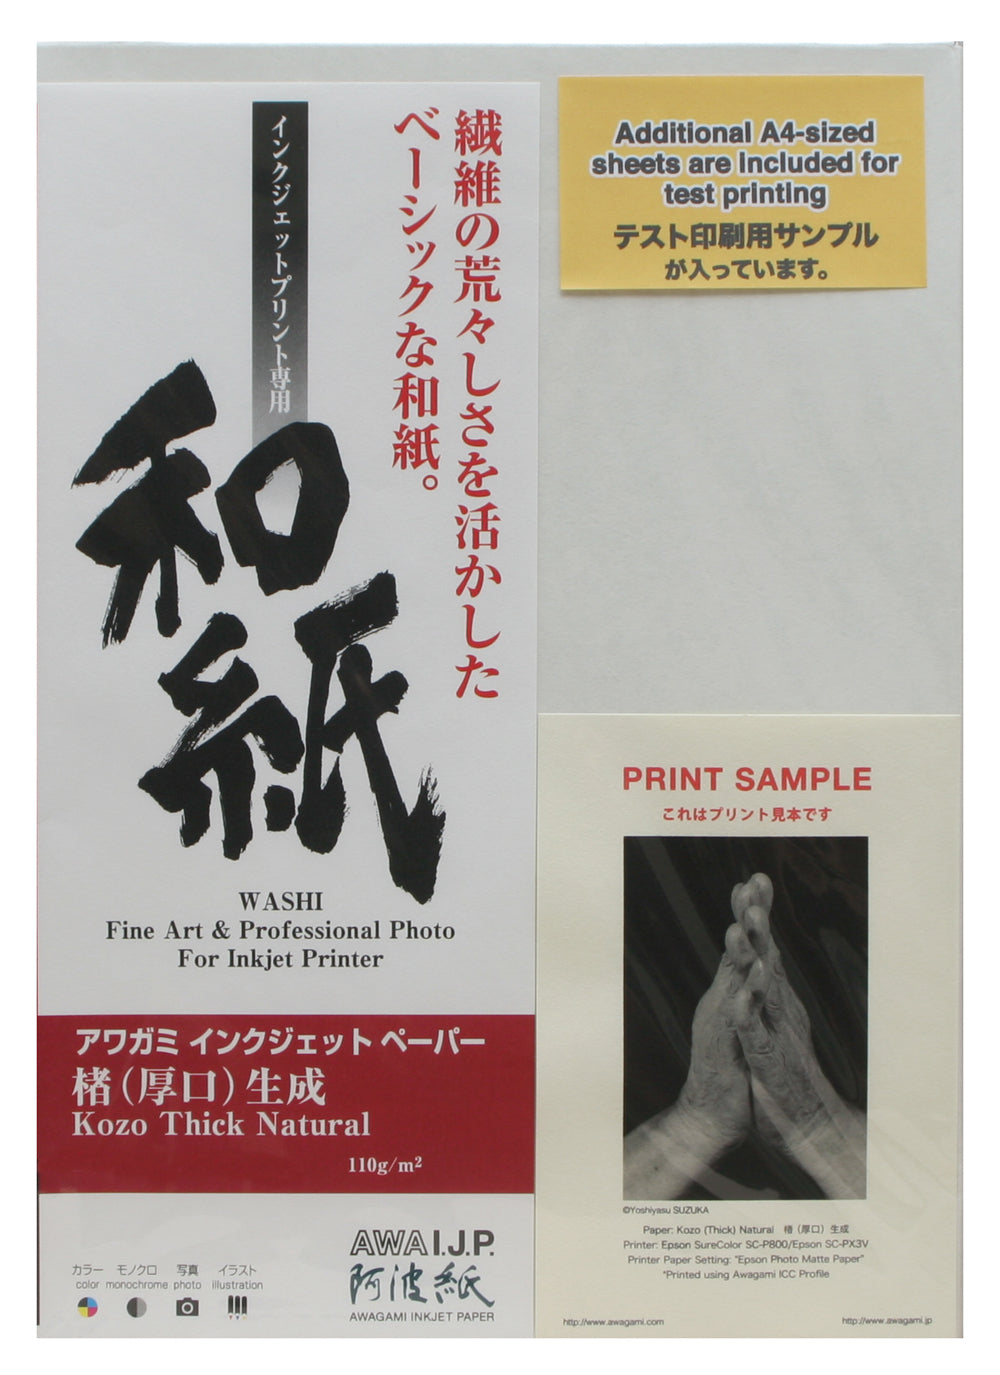 Awagami Kozo Thick Natural 110gsm